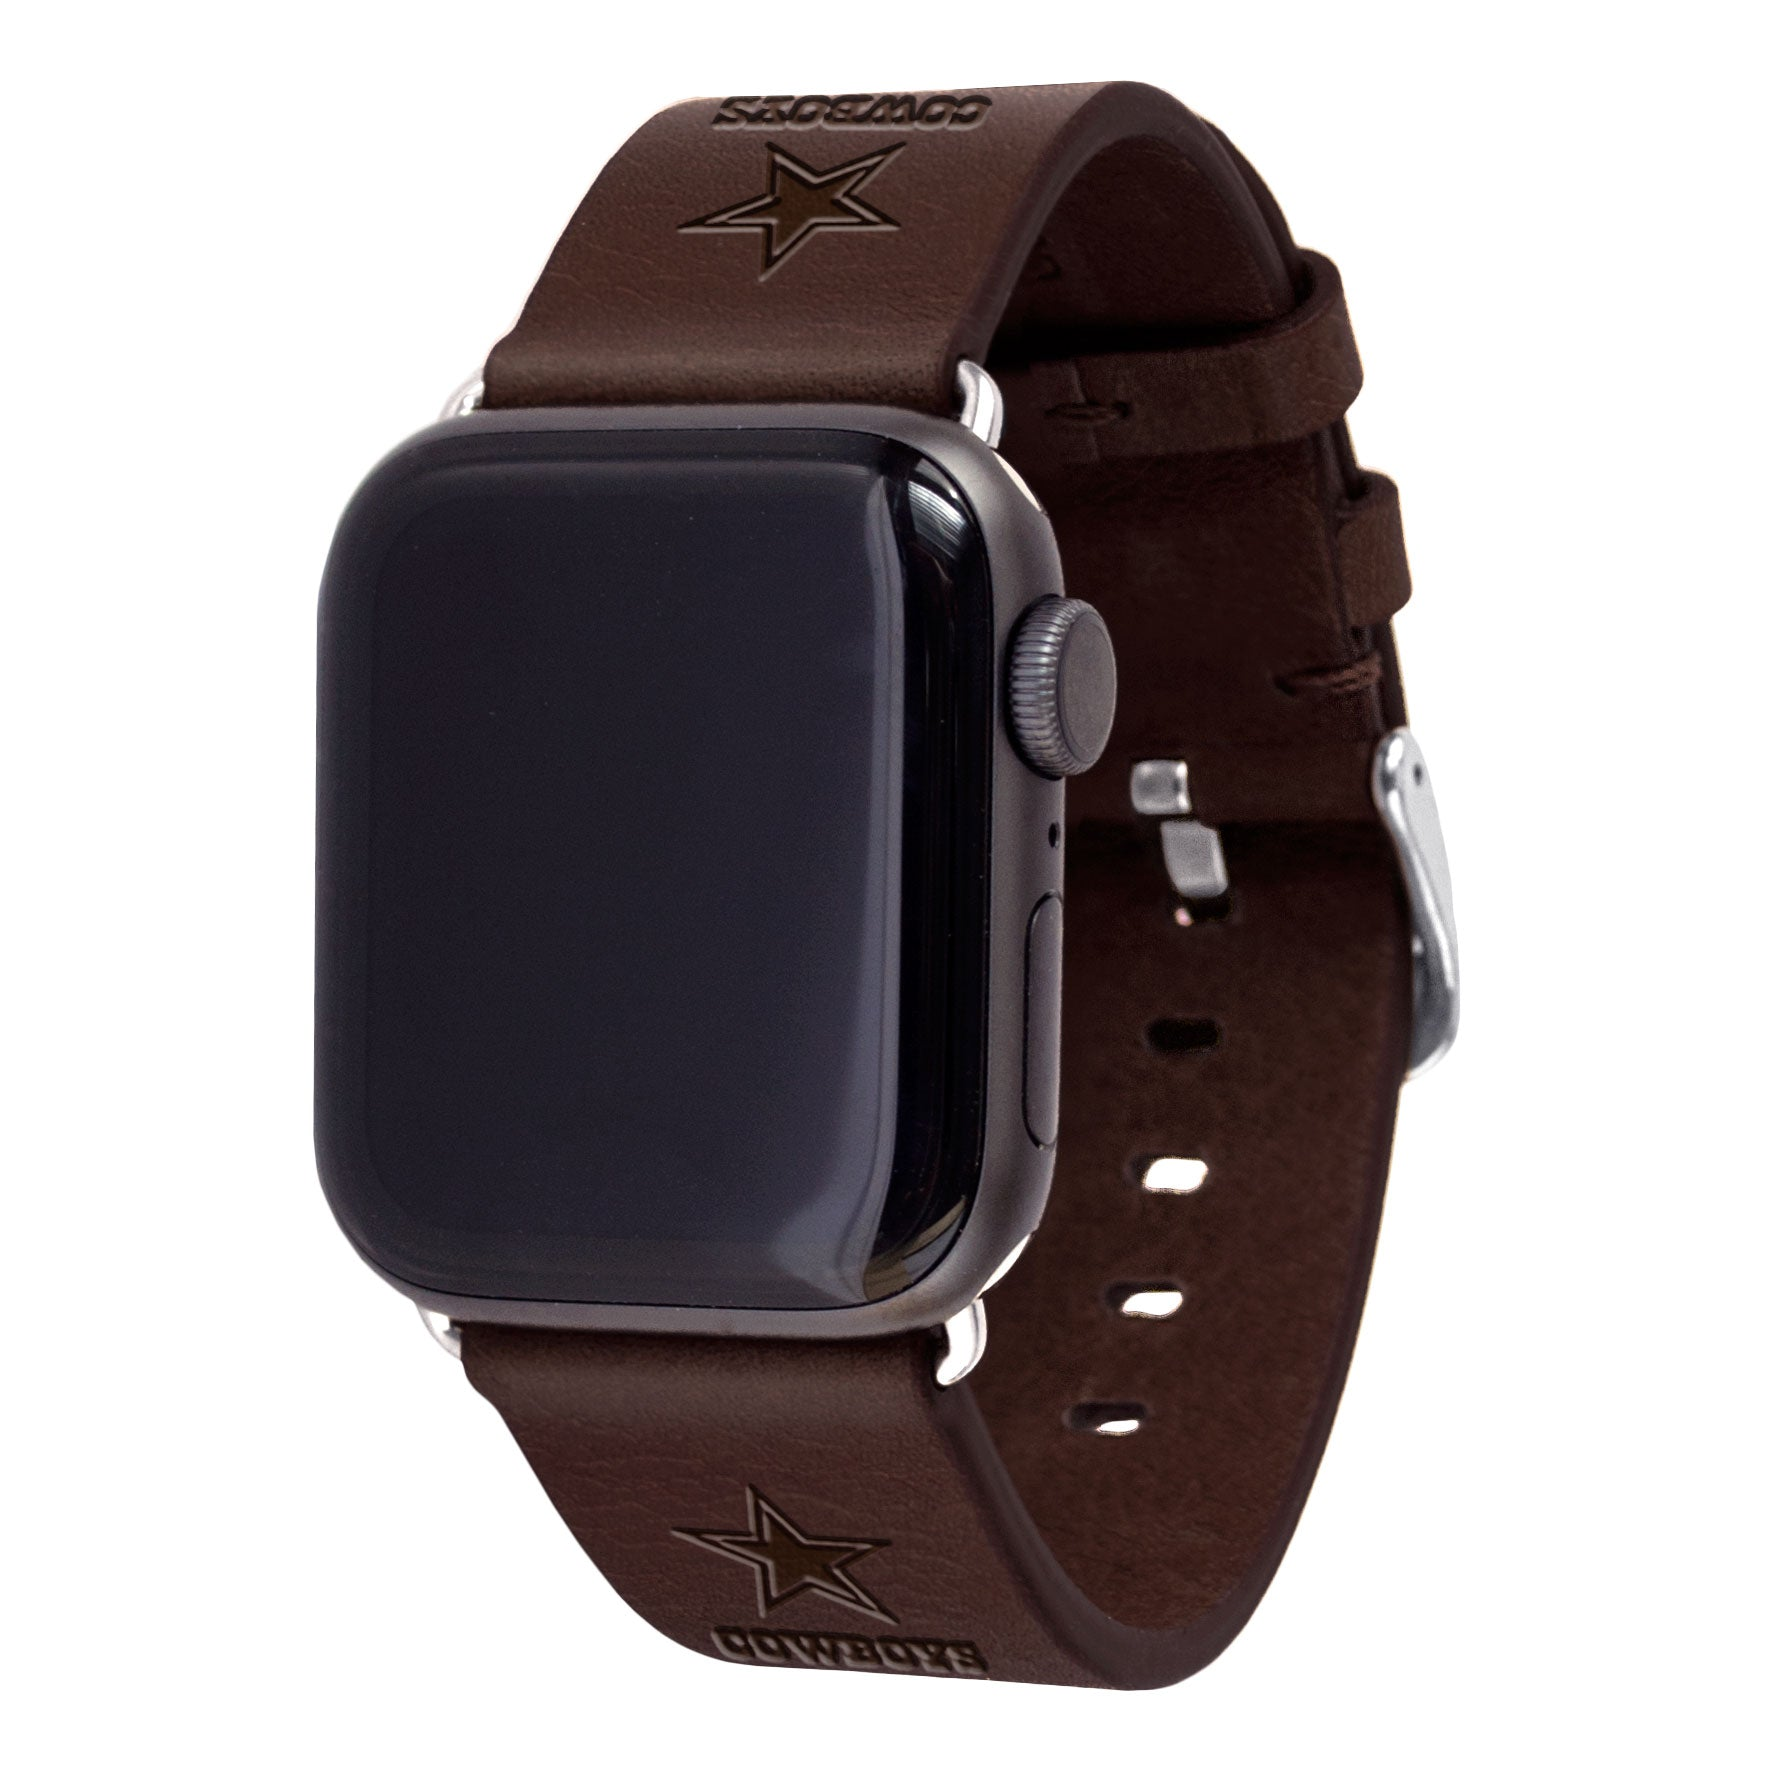 Dallas Cowboys Leather Apple Watch Band-AffinityBands